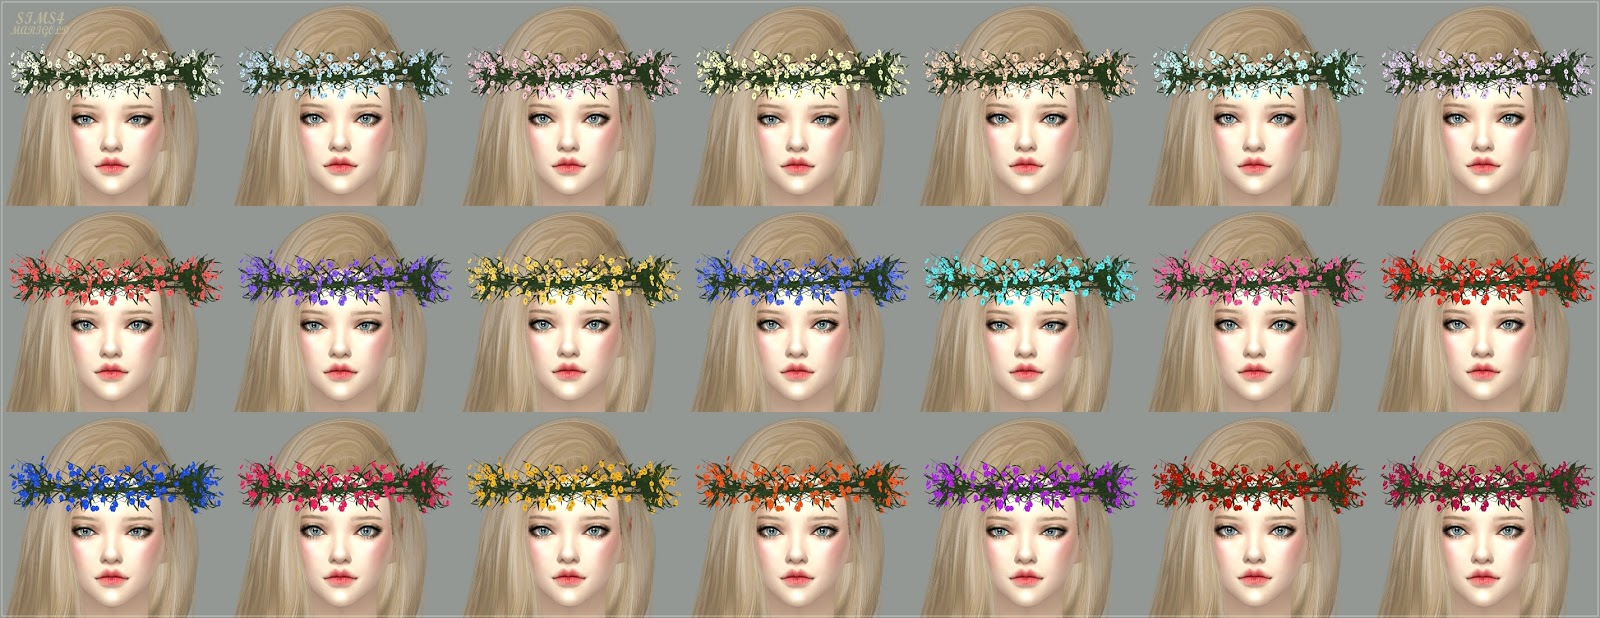 Flower Crowns for Males & Females by Marigold